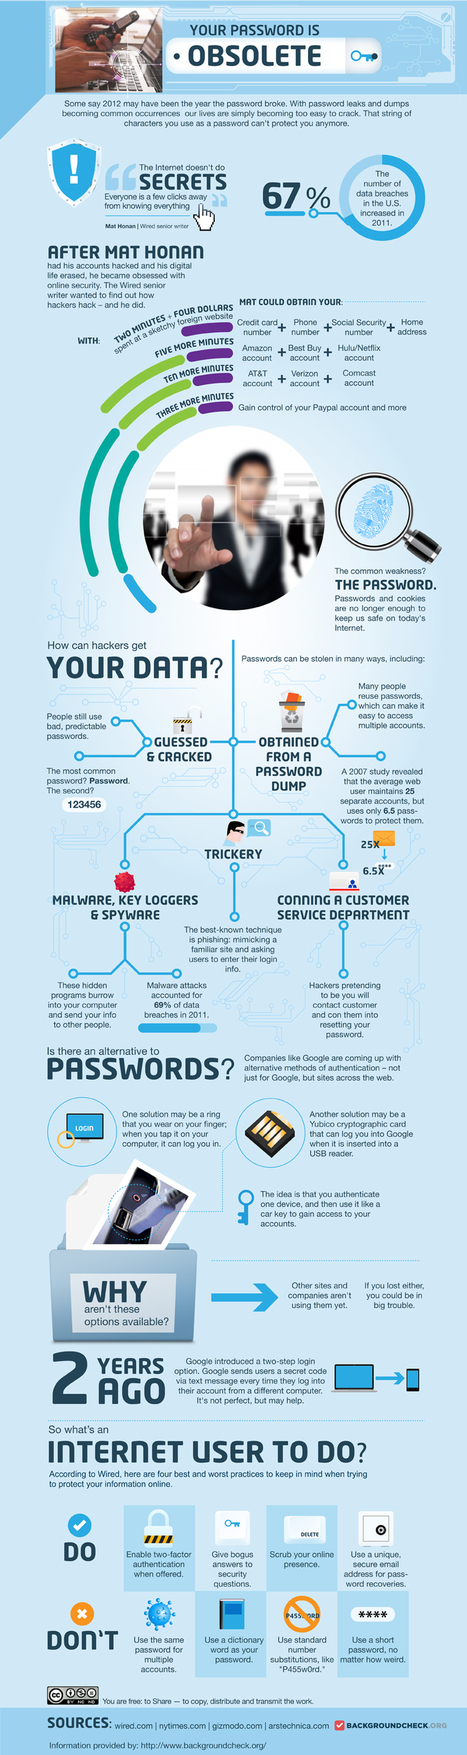 Your password is obsolete [infographic] | The changing face of the Internet | Scoop.it